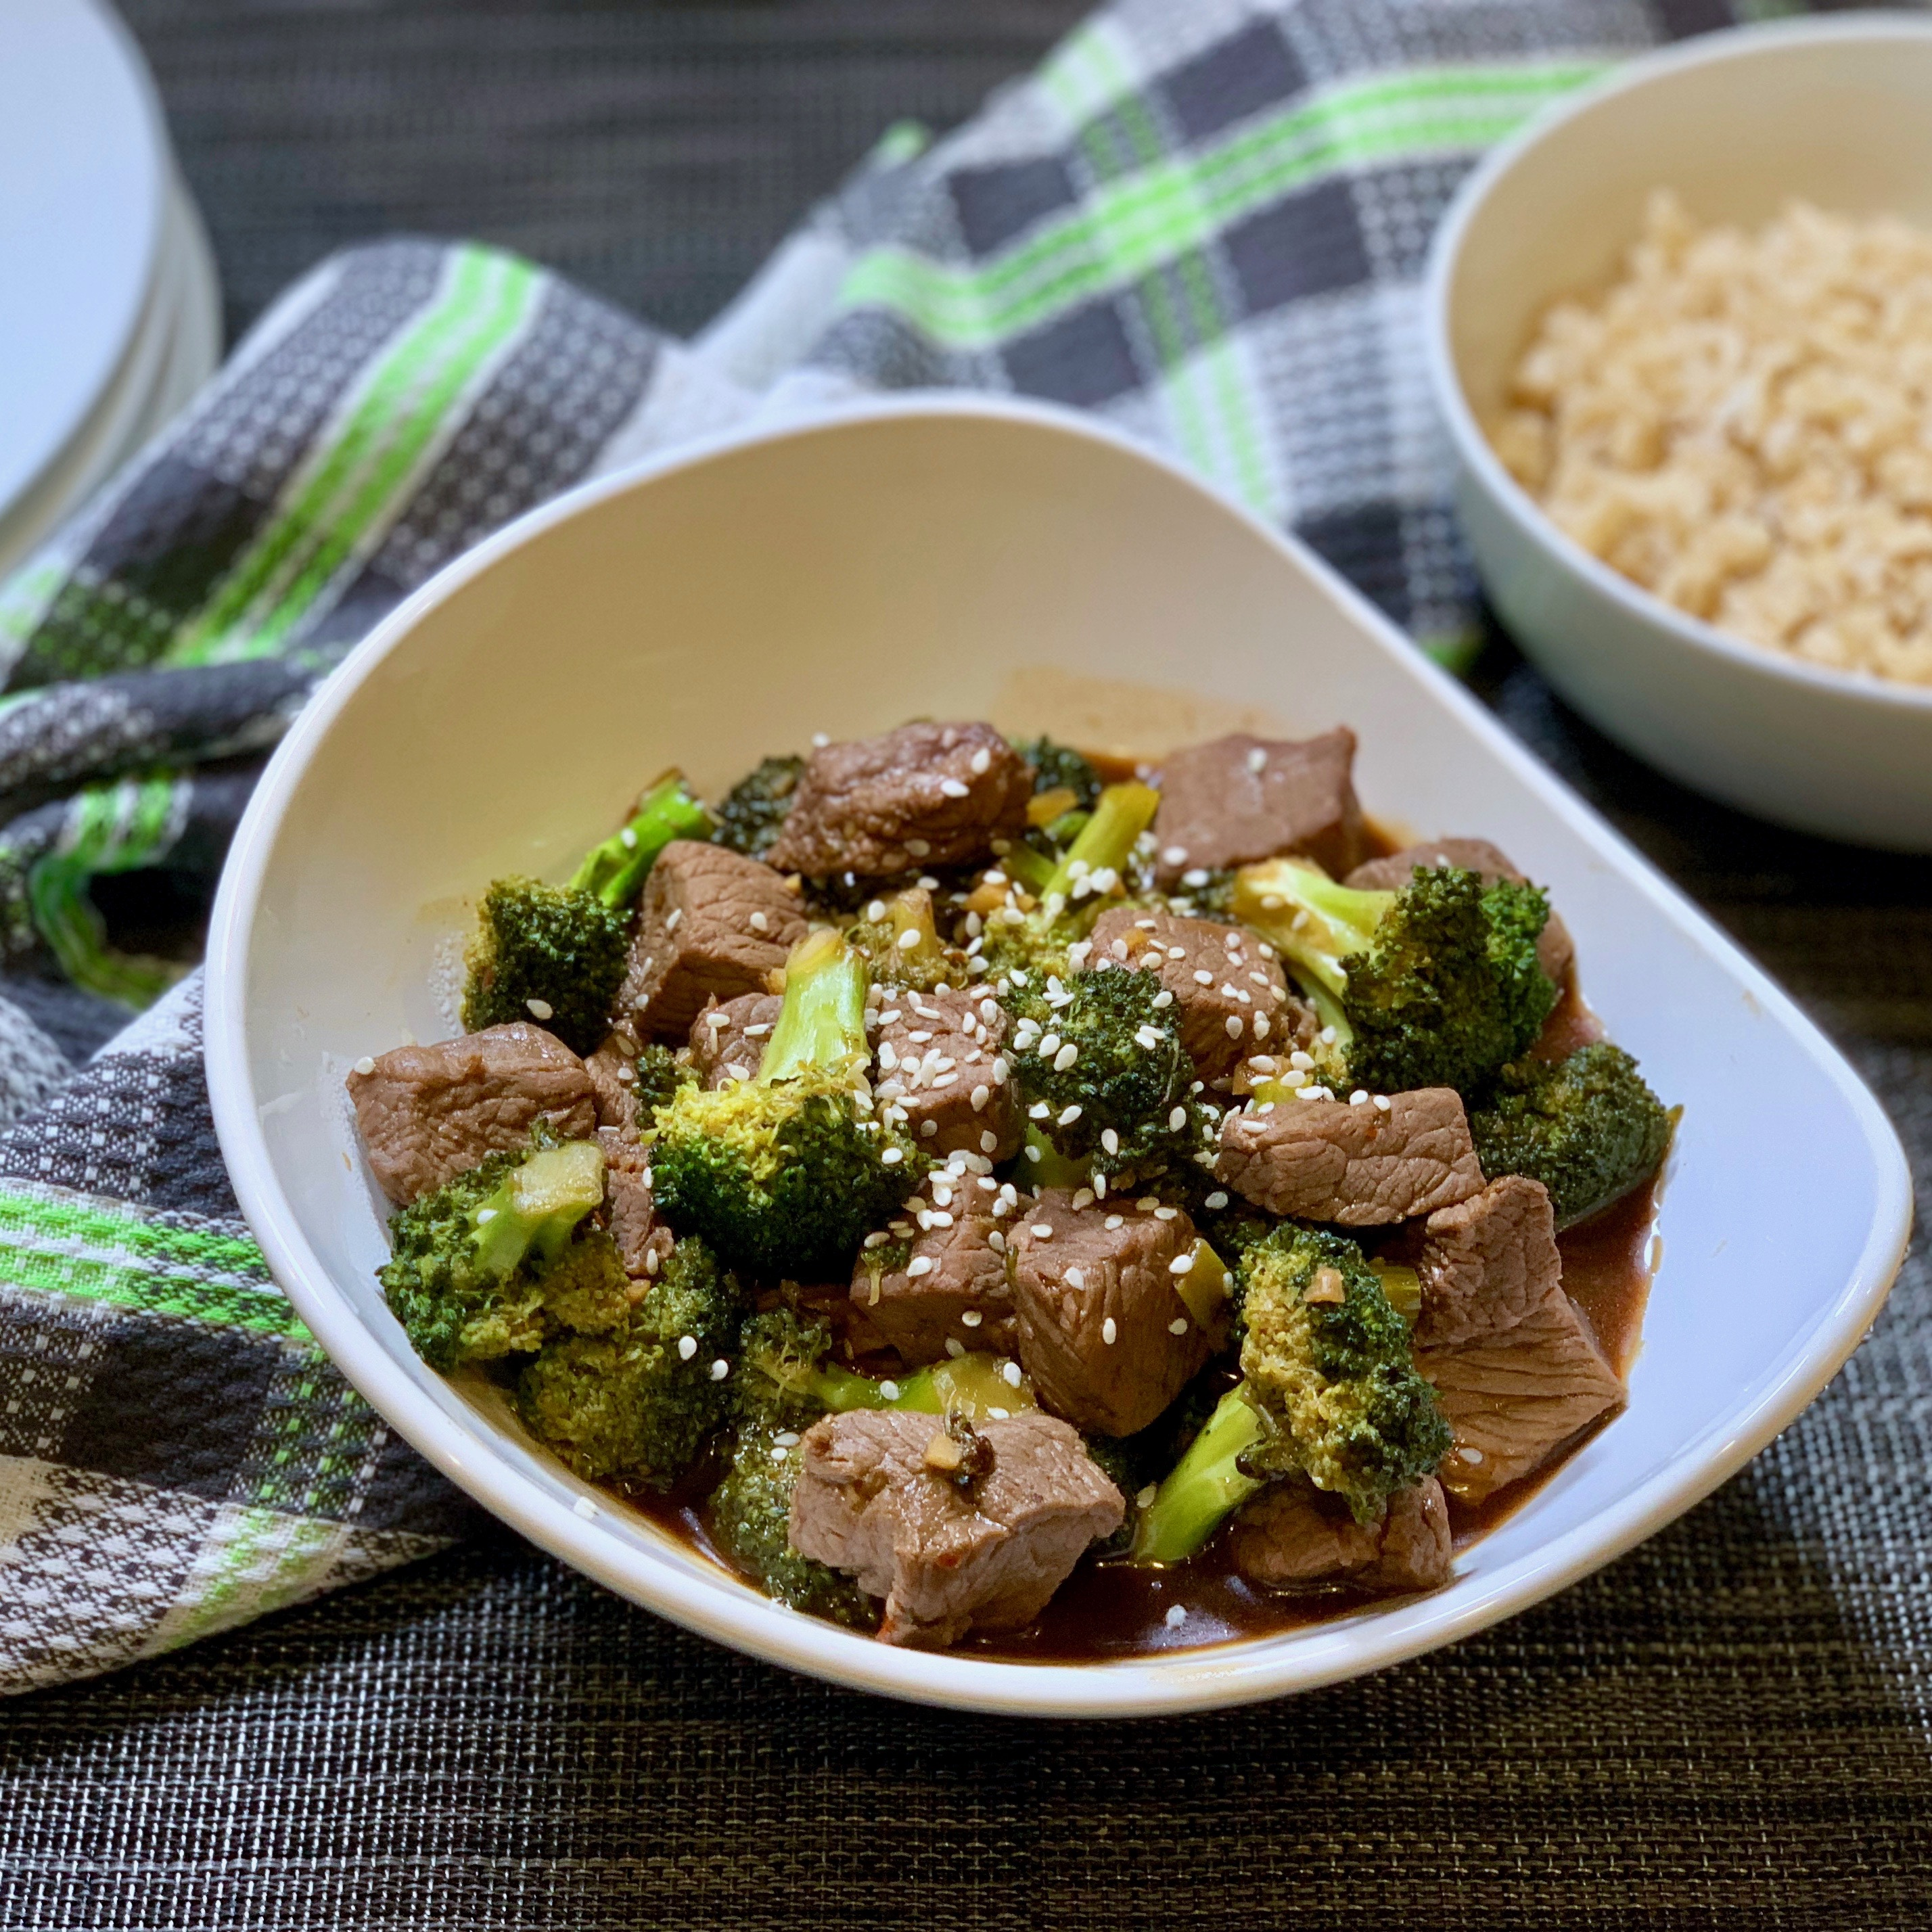 Protein and Veggies made tasty with this Healthy Beef and Broccoli Recipe